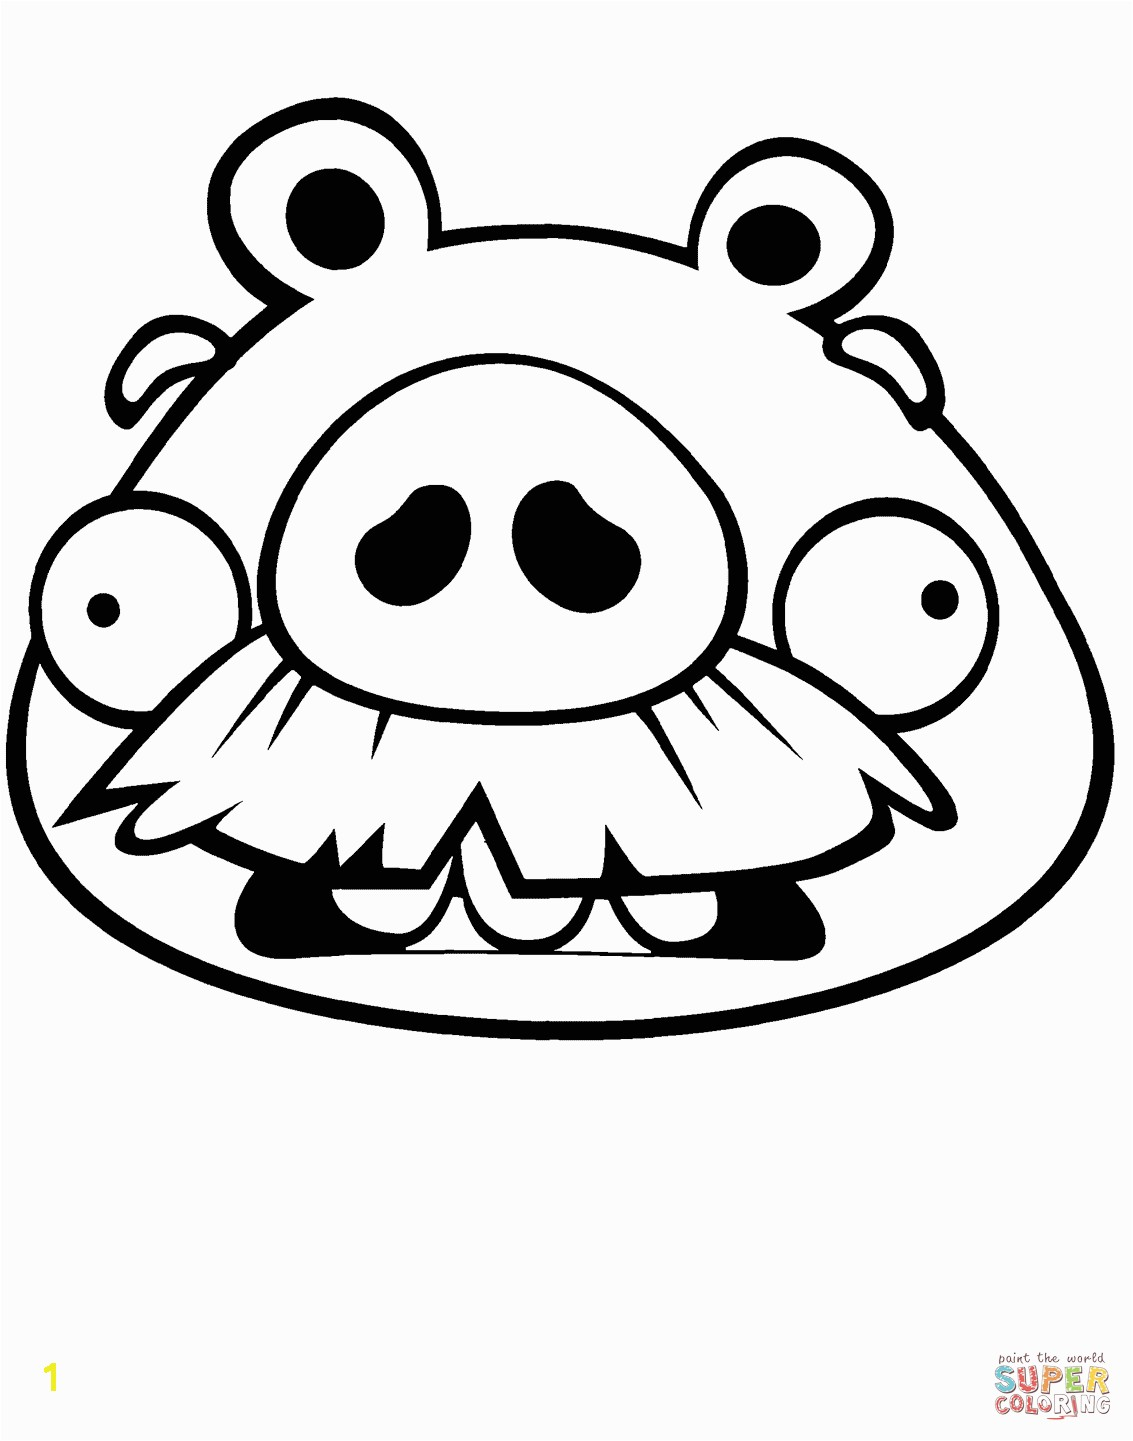 the Foreman Pig coloring pages to view printable